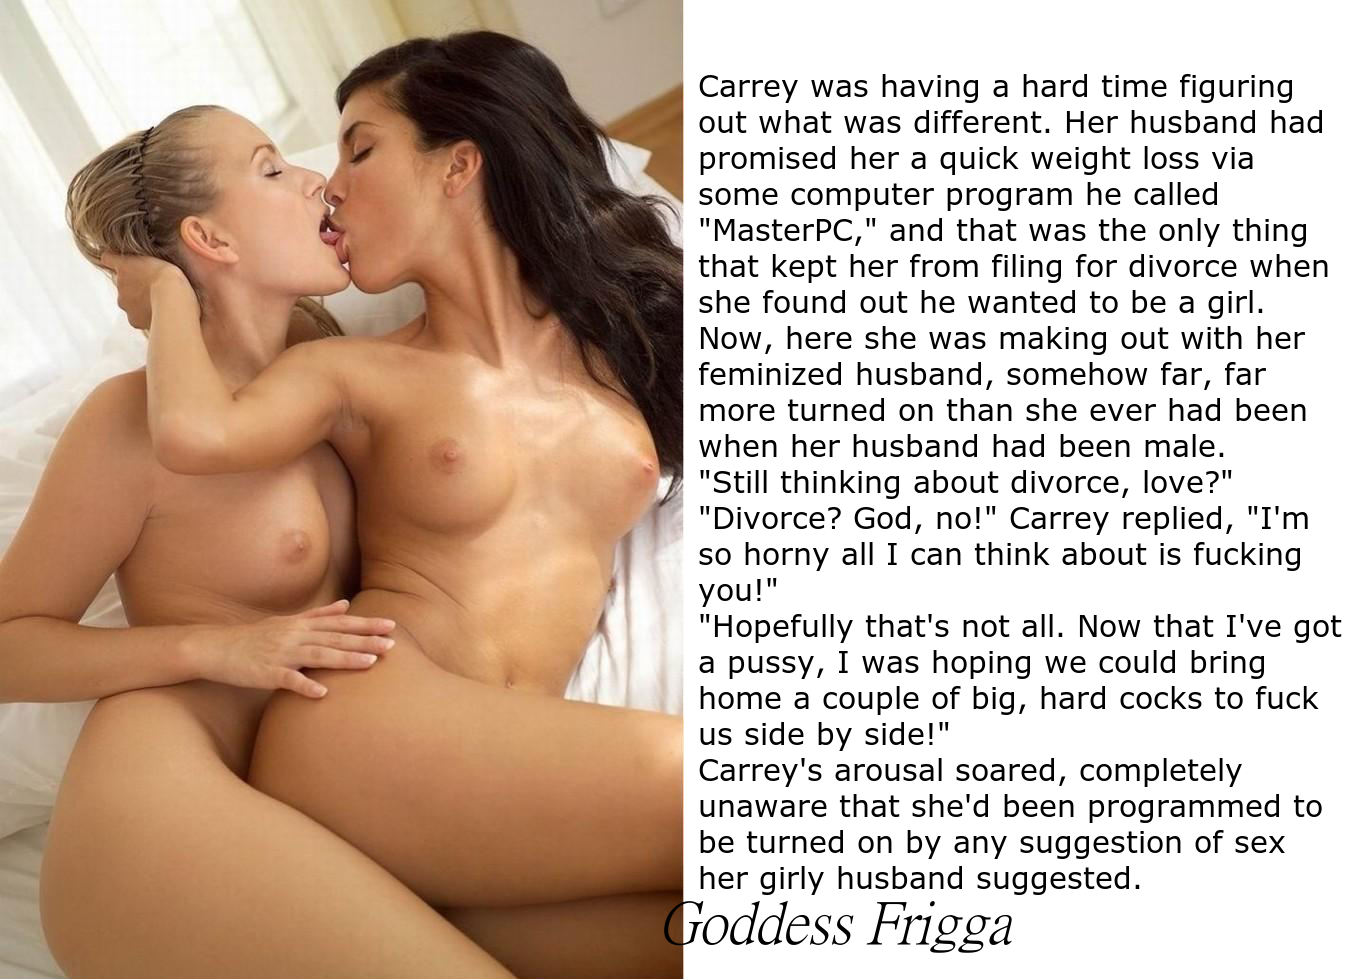 The Computer Program Erotic Story